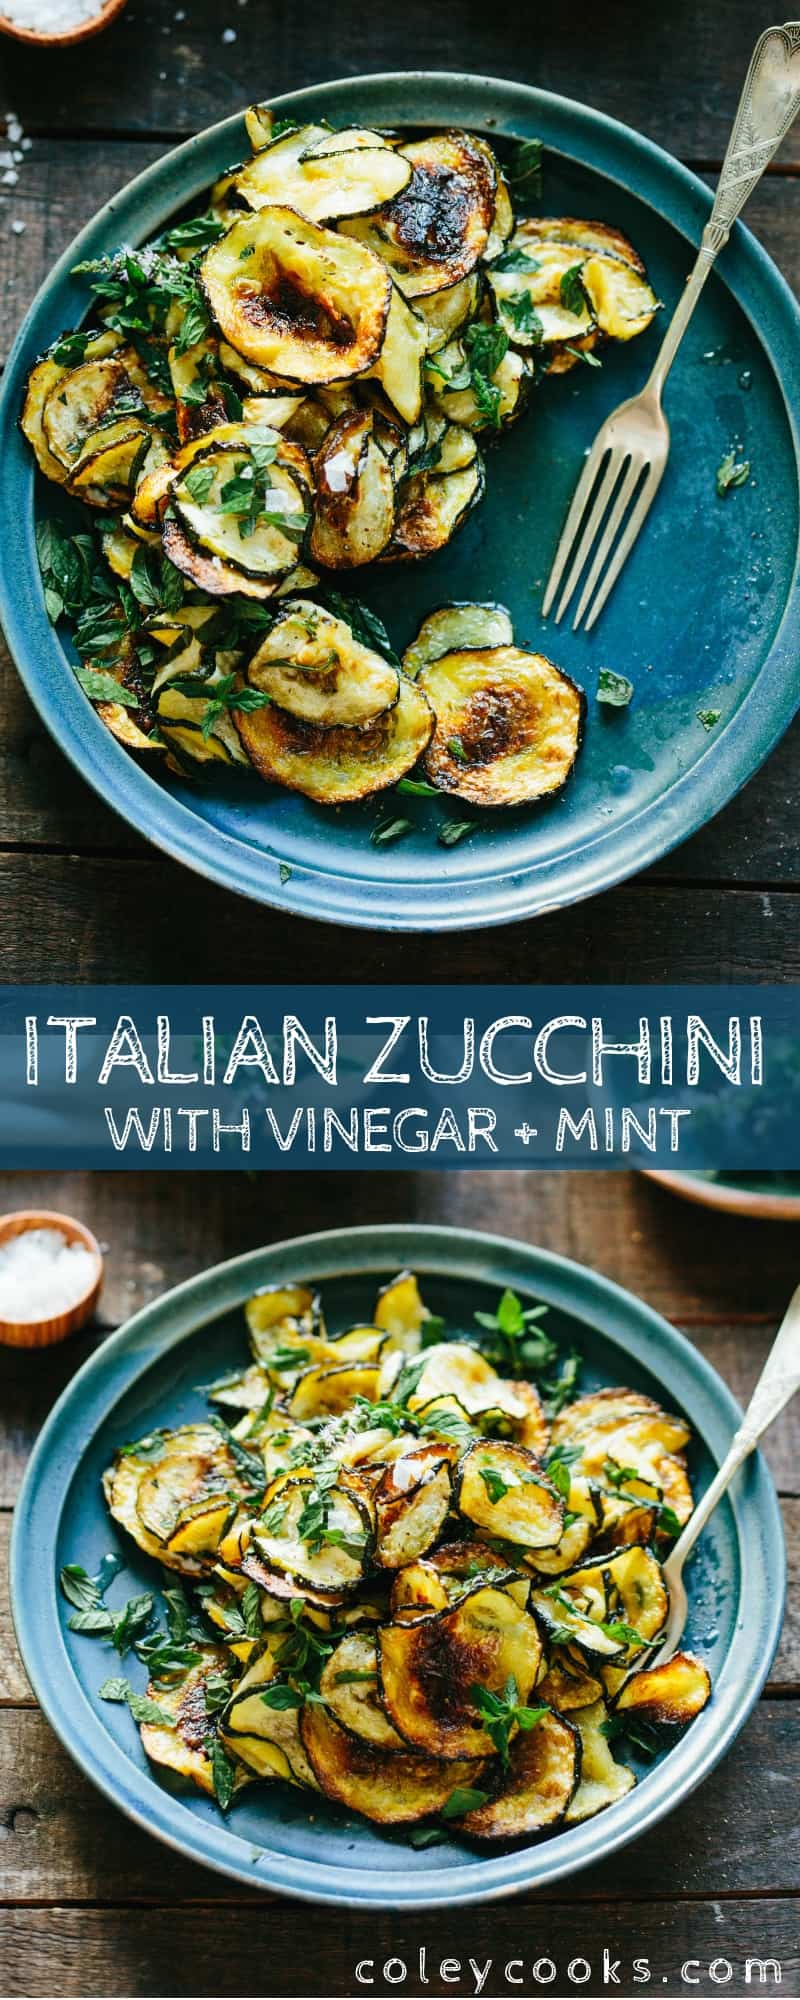 Pinterest collage of Italian seasoned zucchini slices roasted with vinegar and mint.